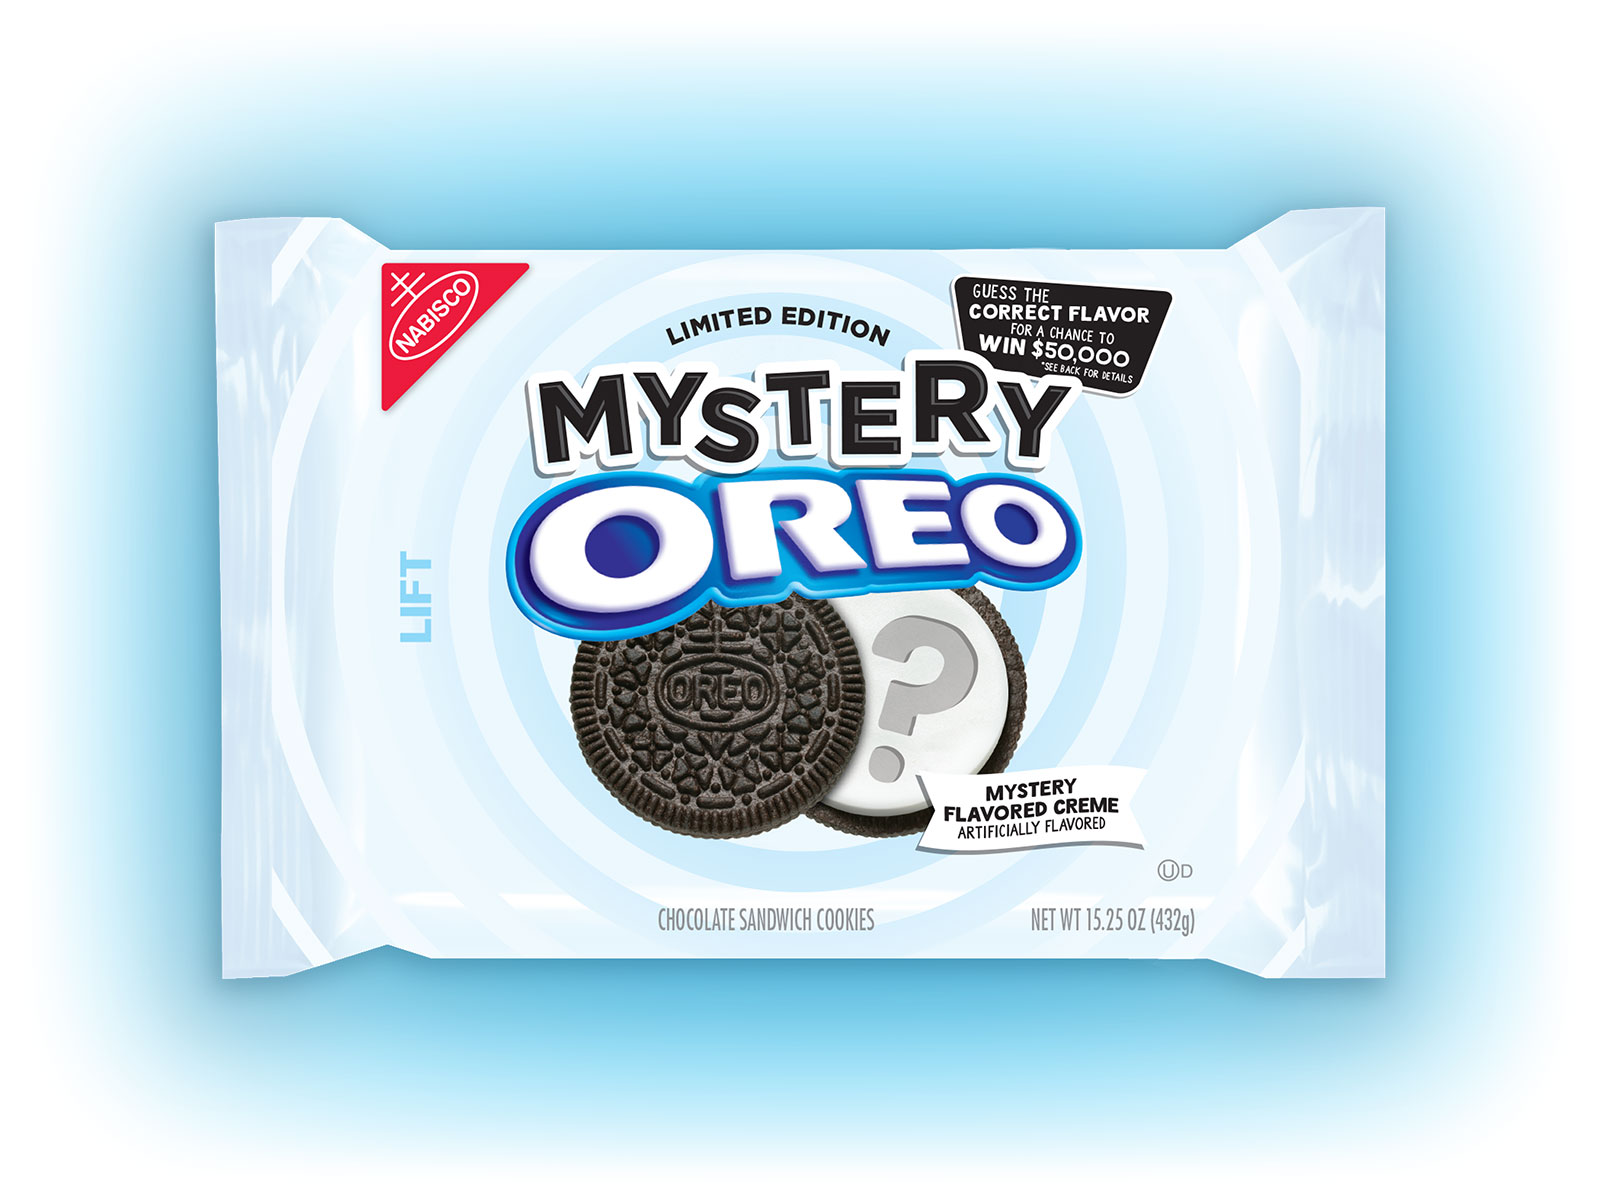 New Oreo Flavors 2020 A New Mystery Oreo Flavor Will Arrive Later This Year | Food & Wine